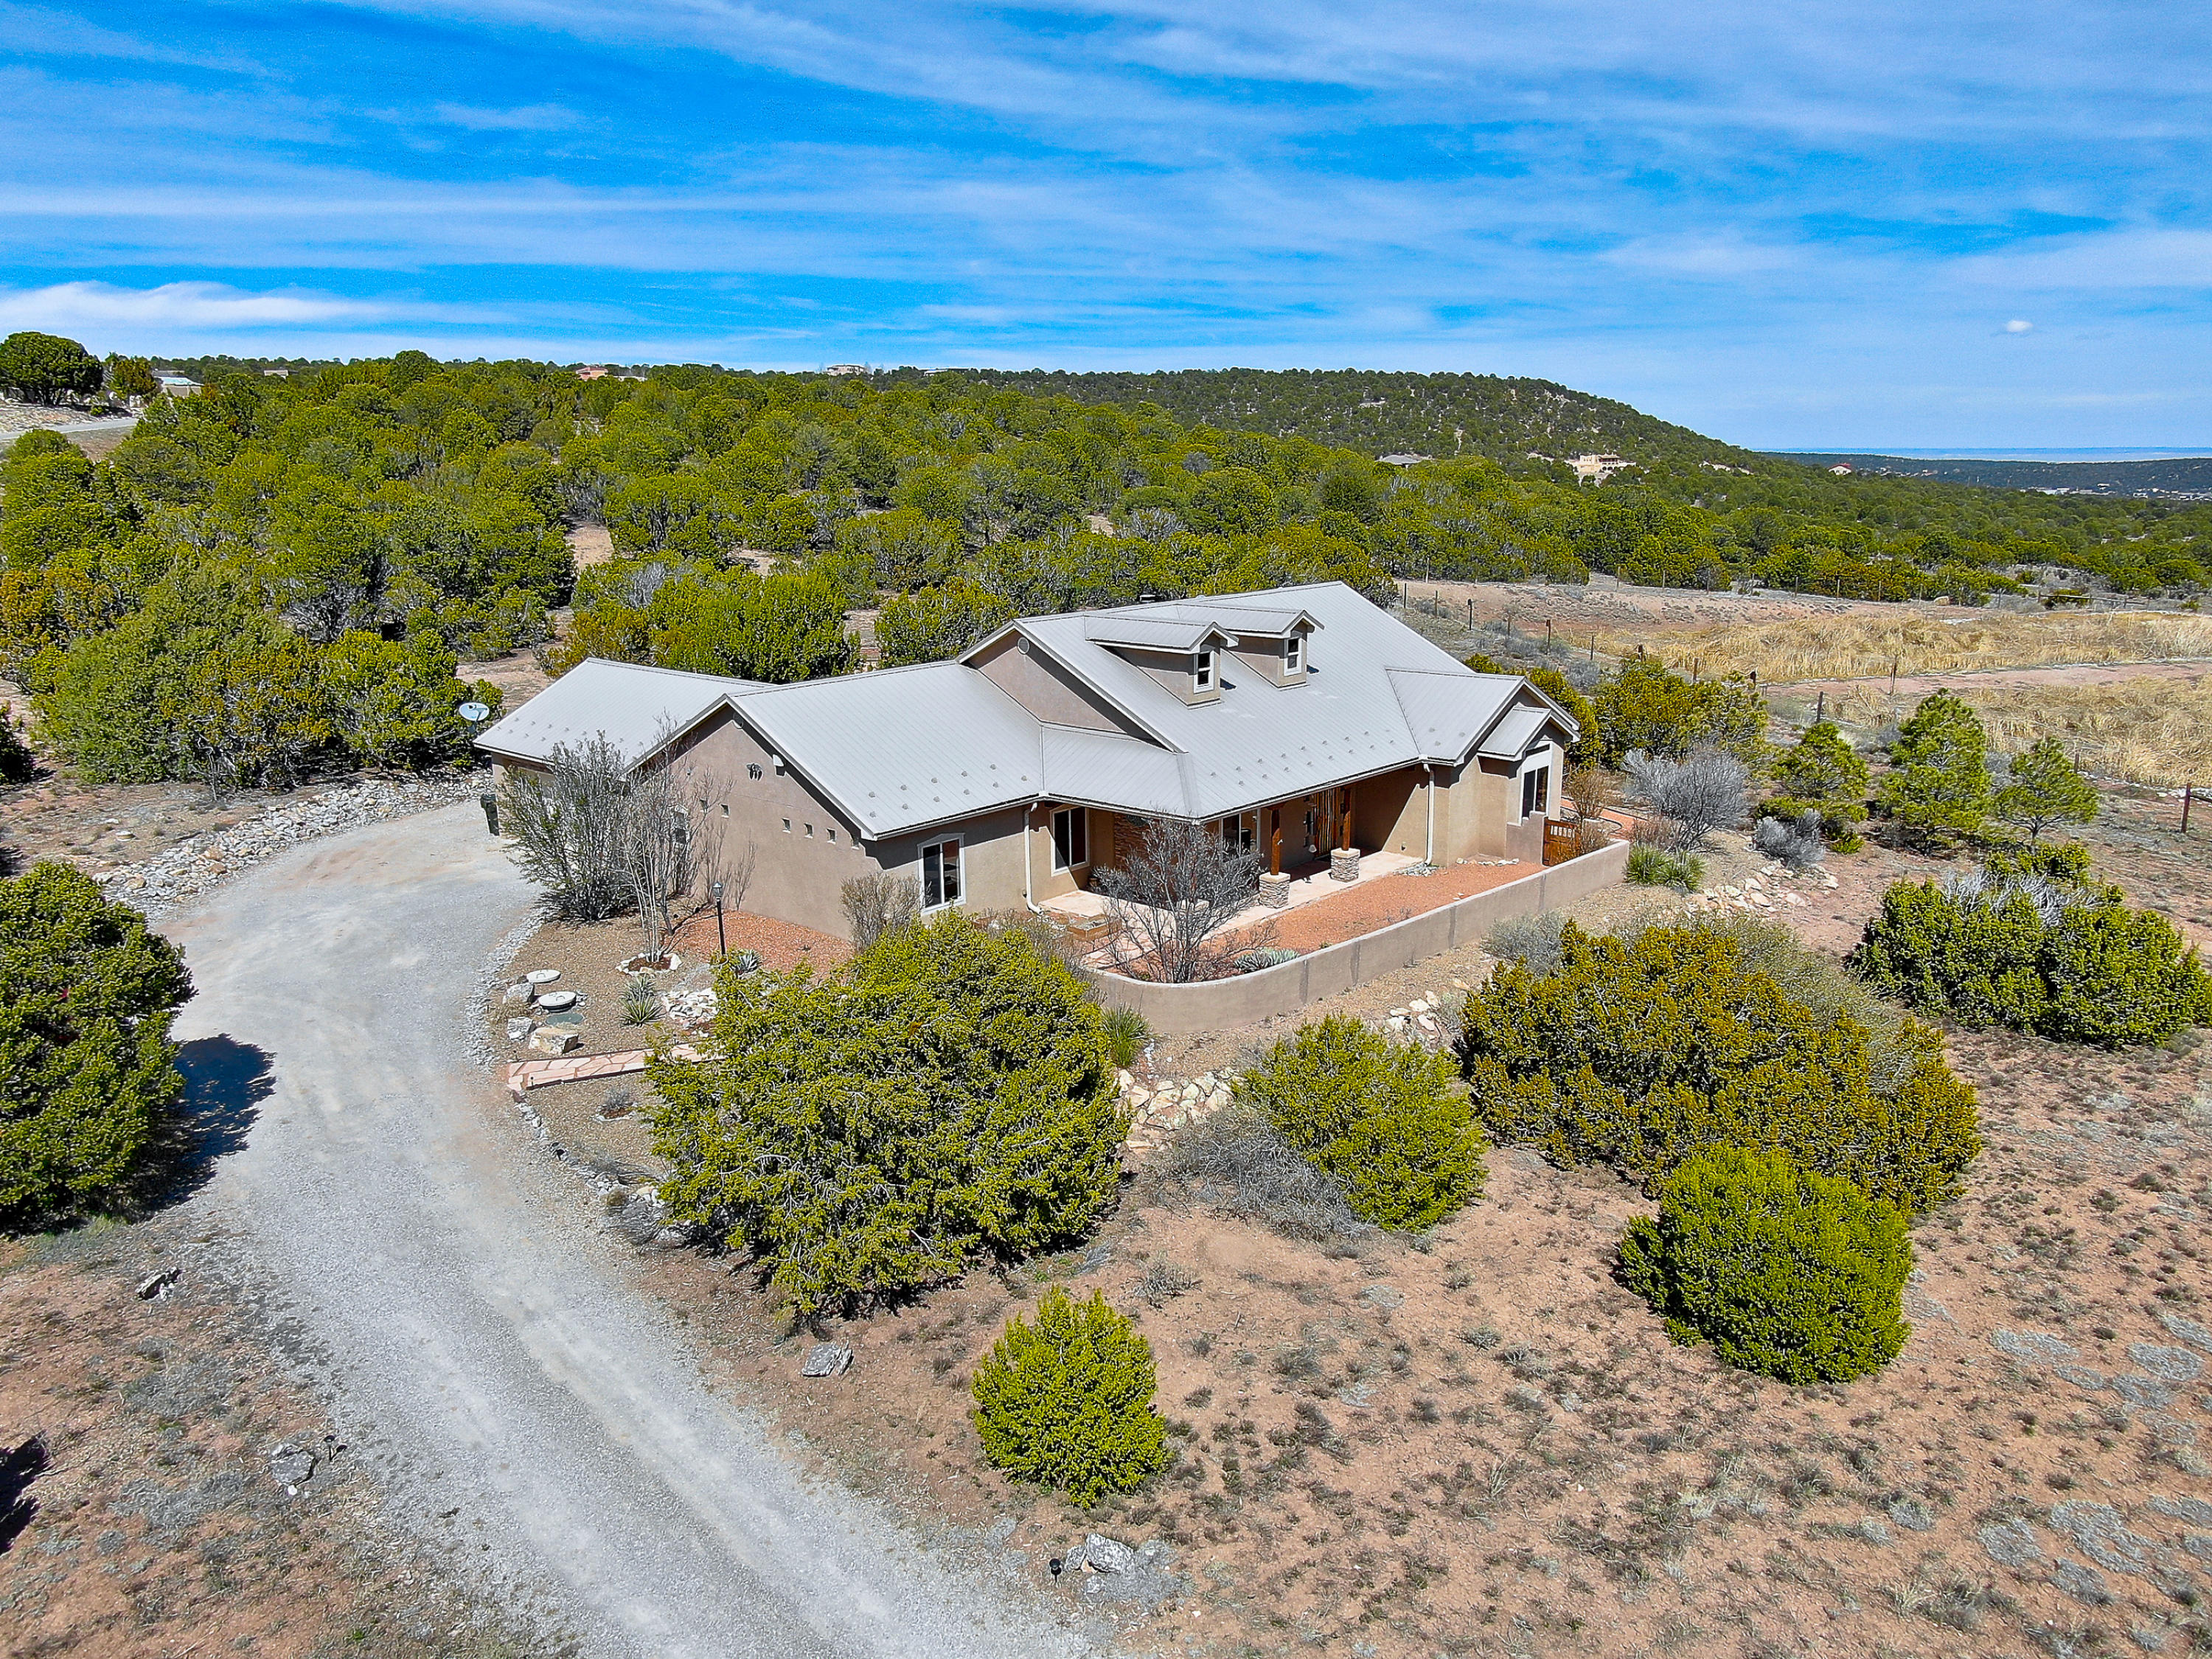 7 MEADOW LAND Court, Tijeras, NM 87059 - Tijeras, NM real estate listing